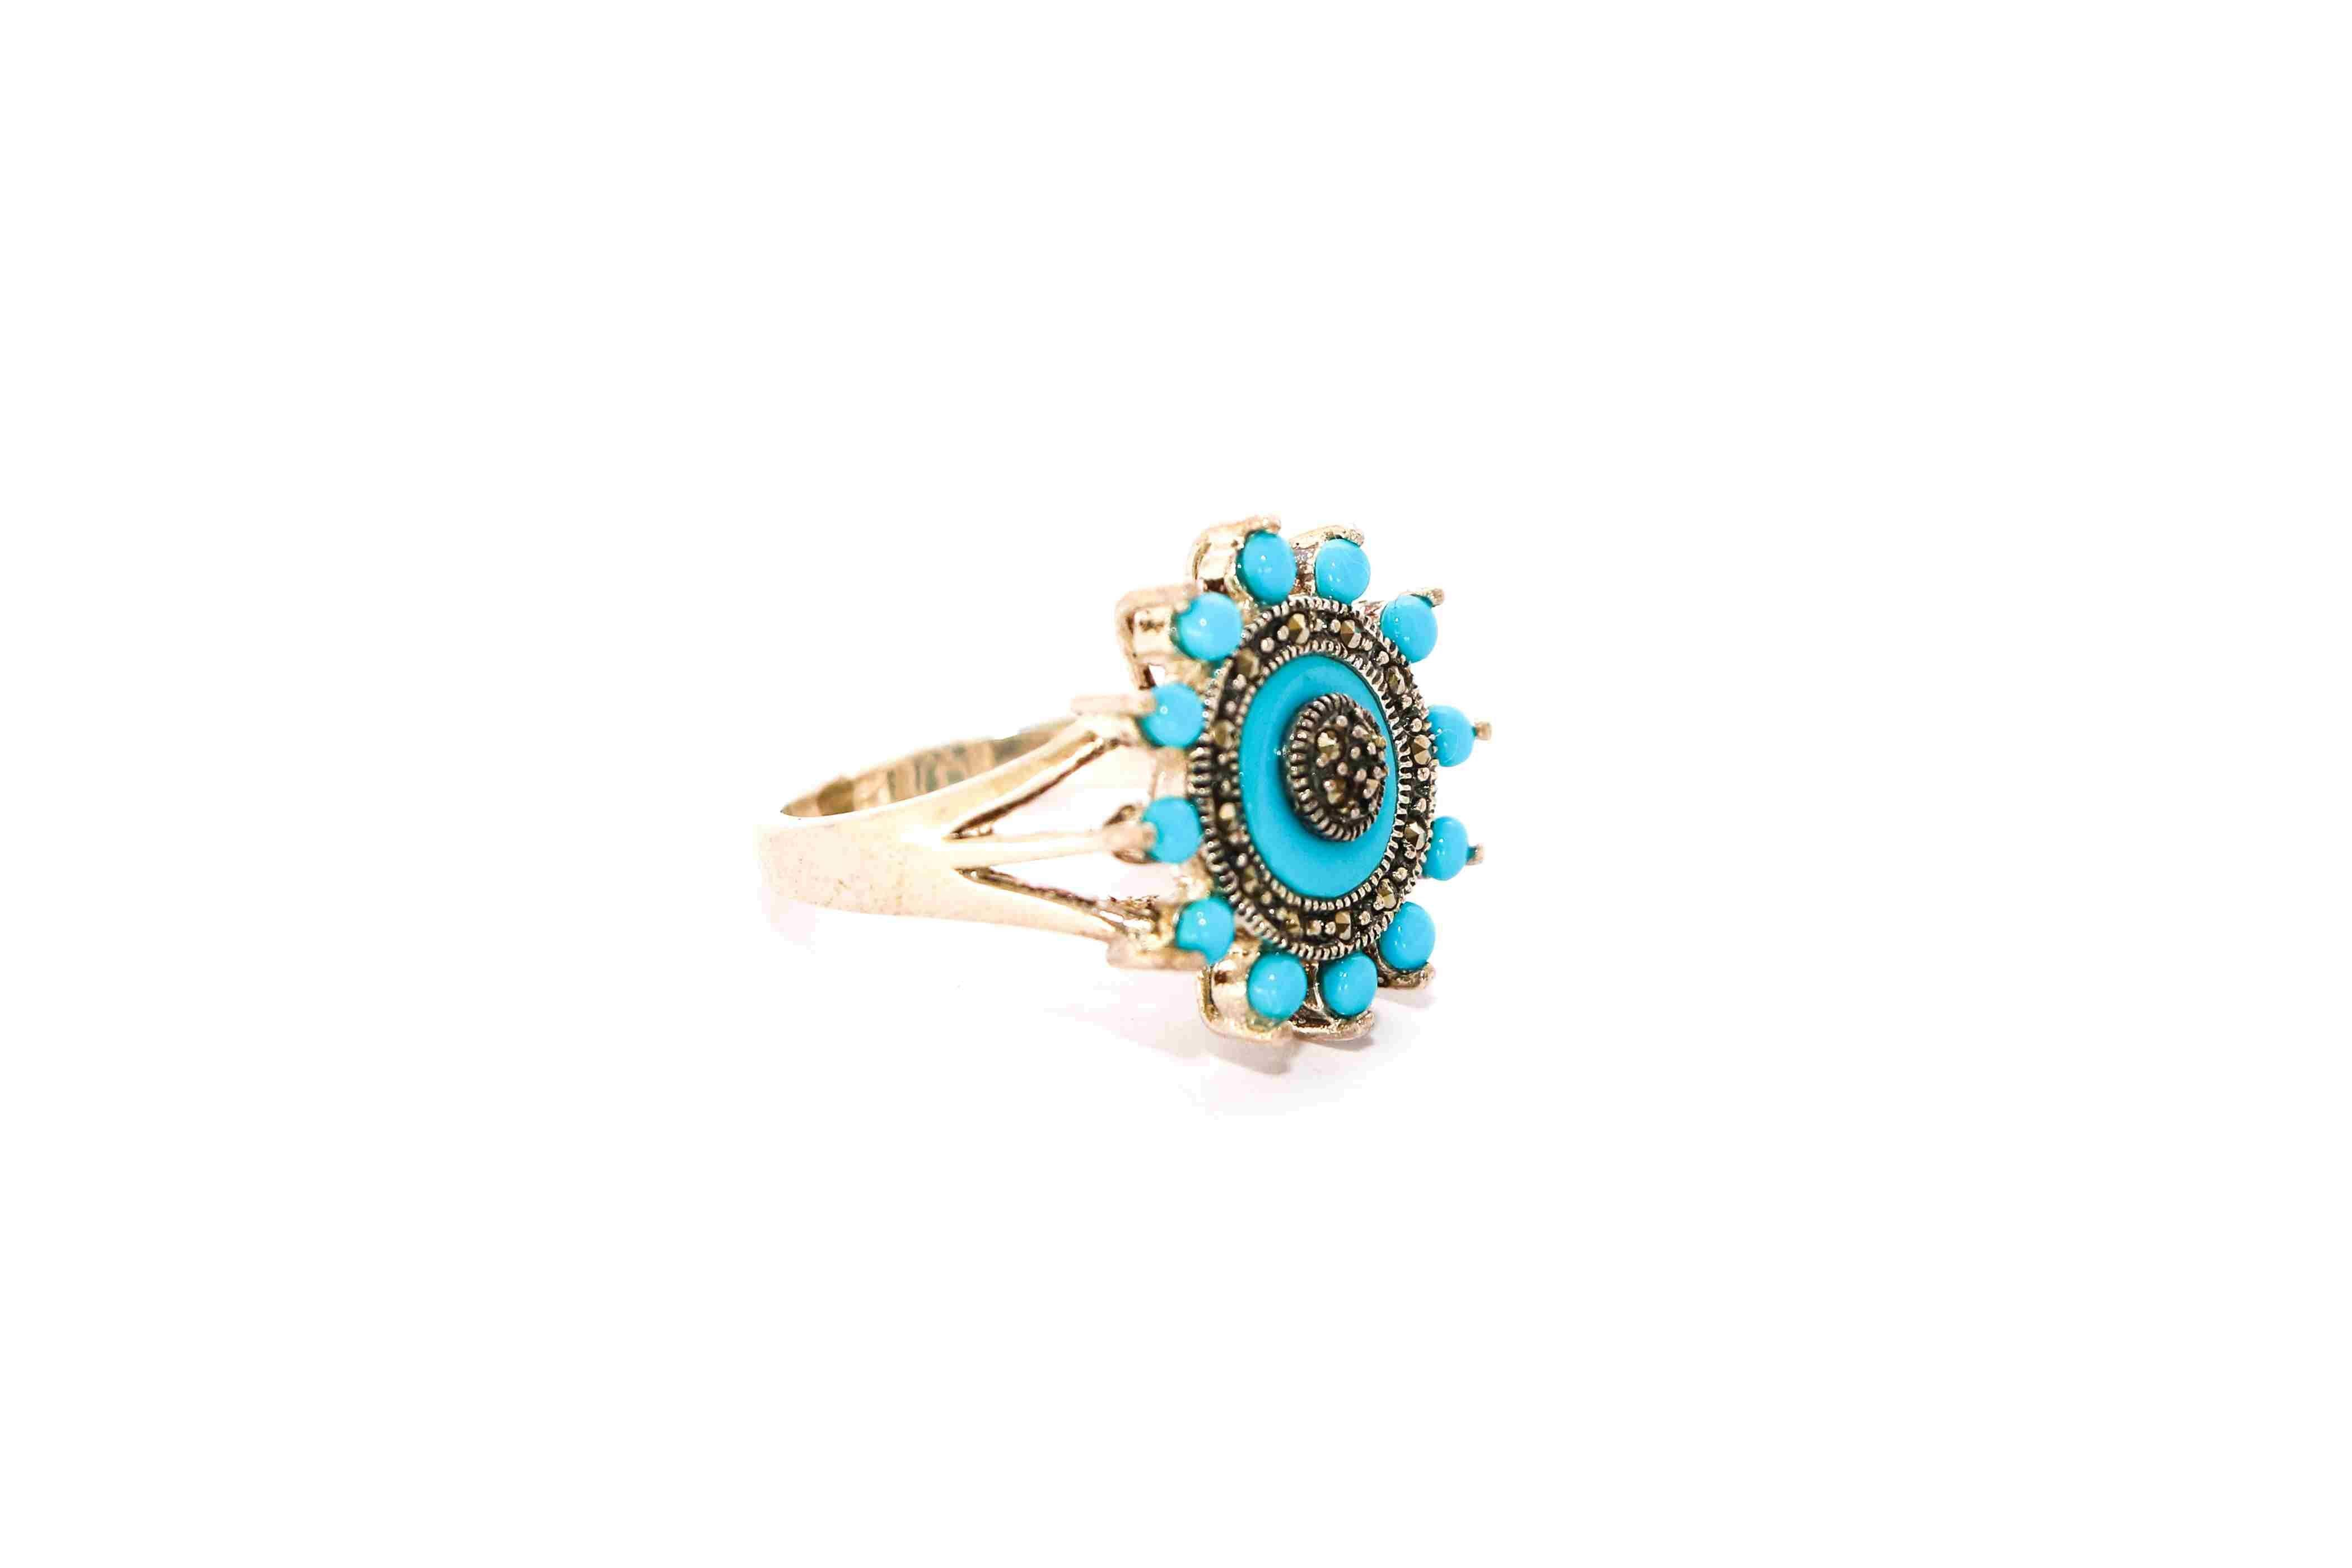 Turquoise ring with marcasite